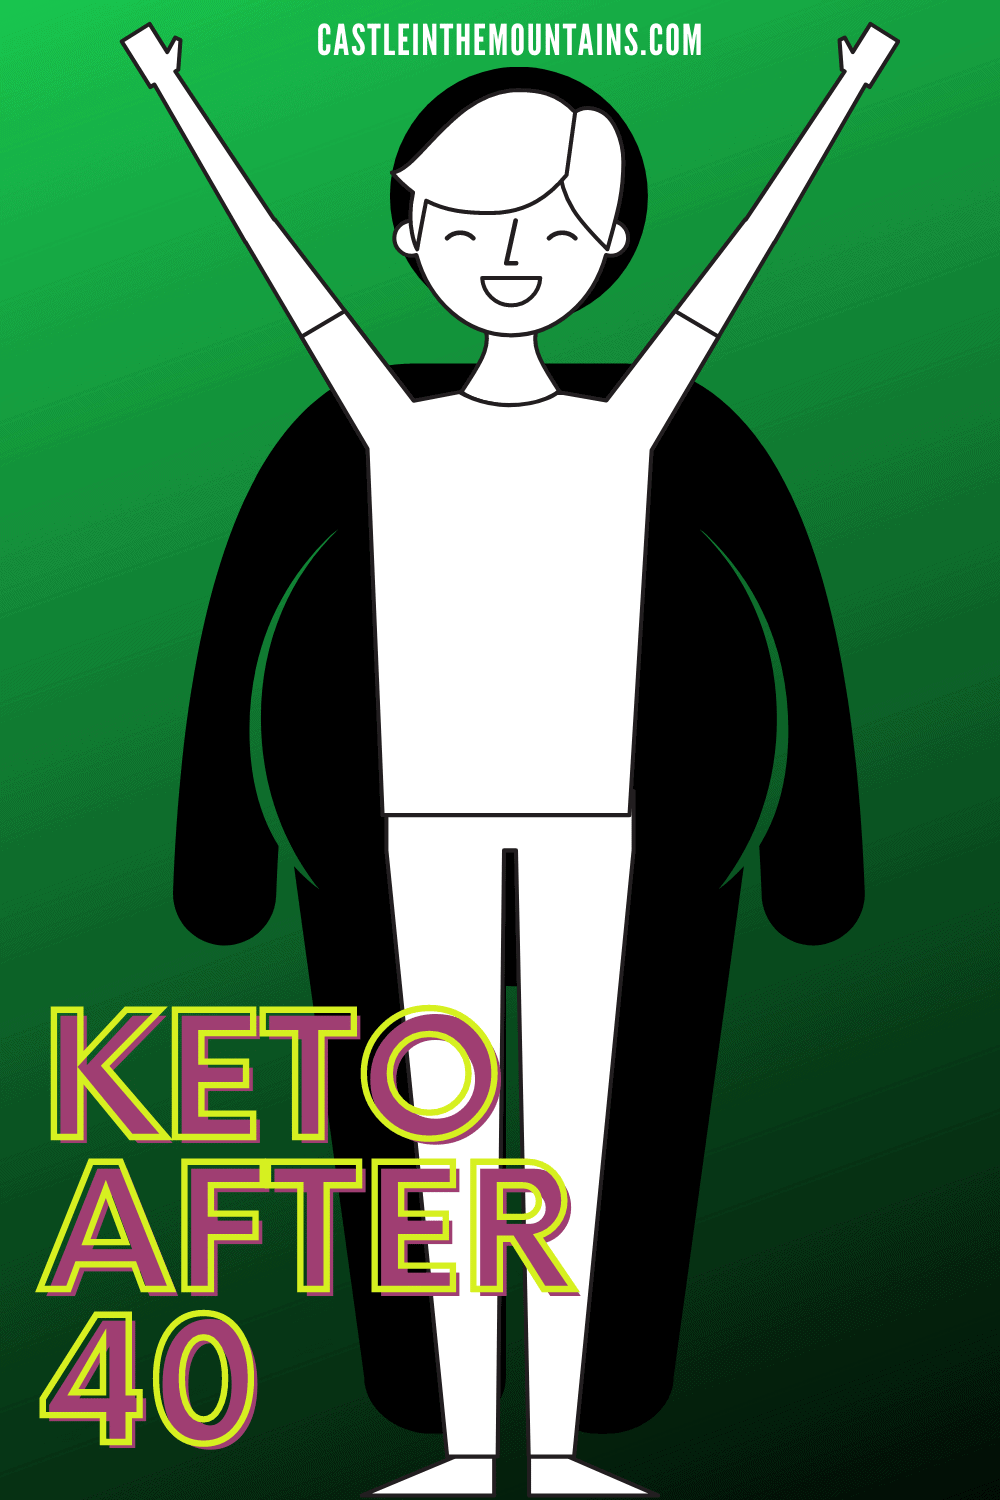 Keto Over 40 - 10 Tips to make your life Easier!